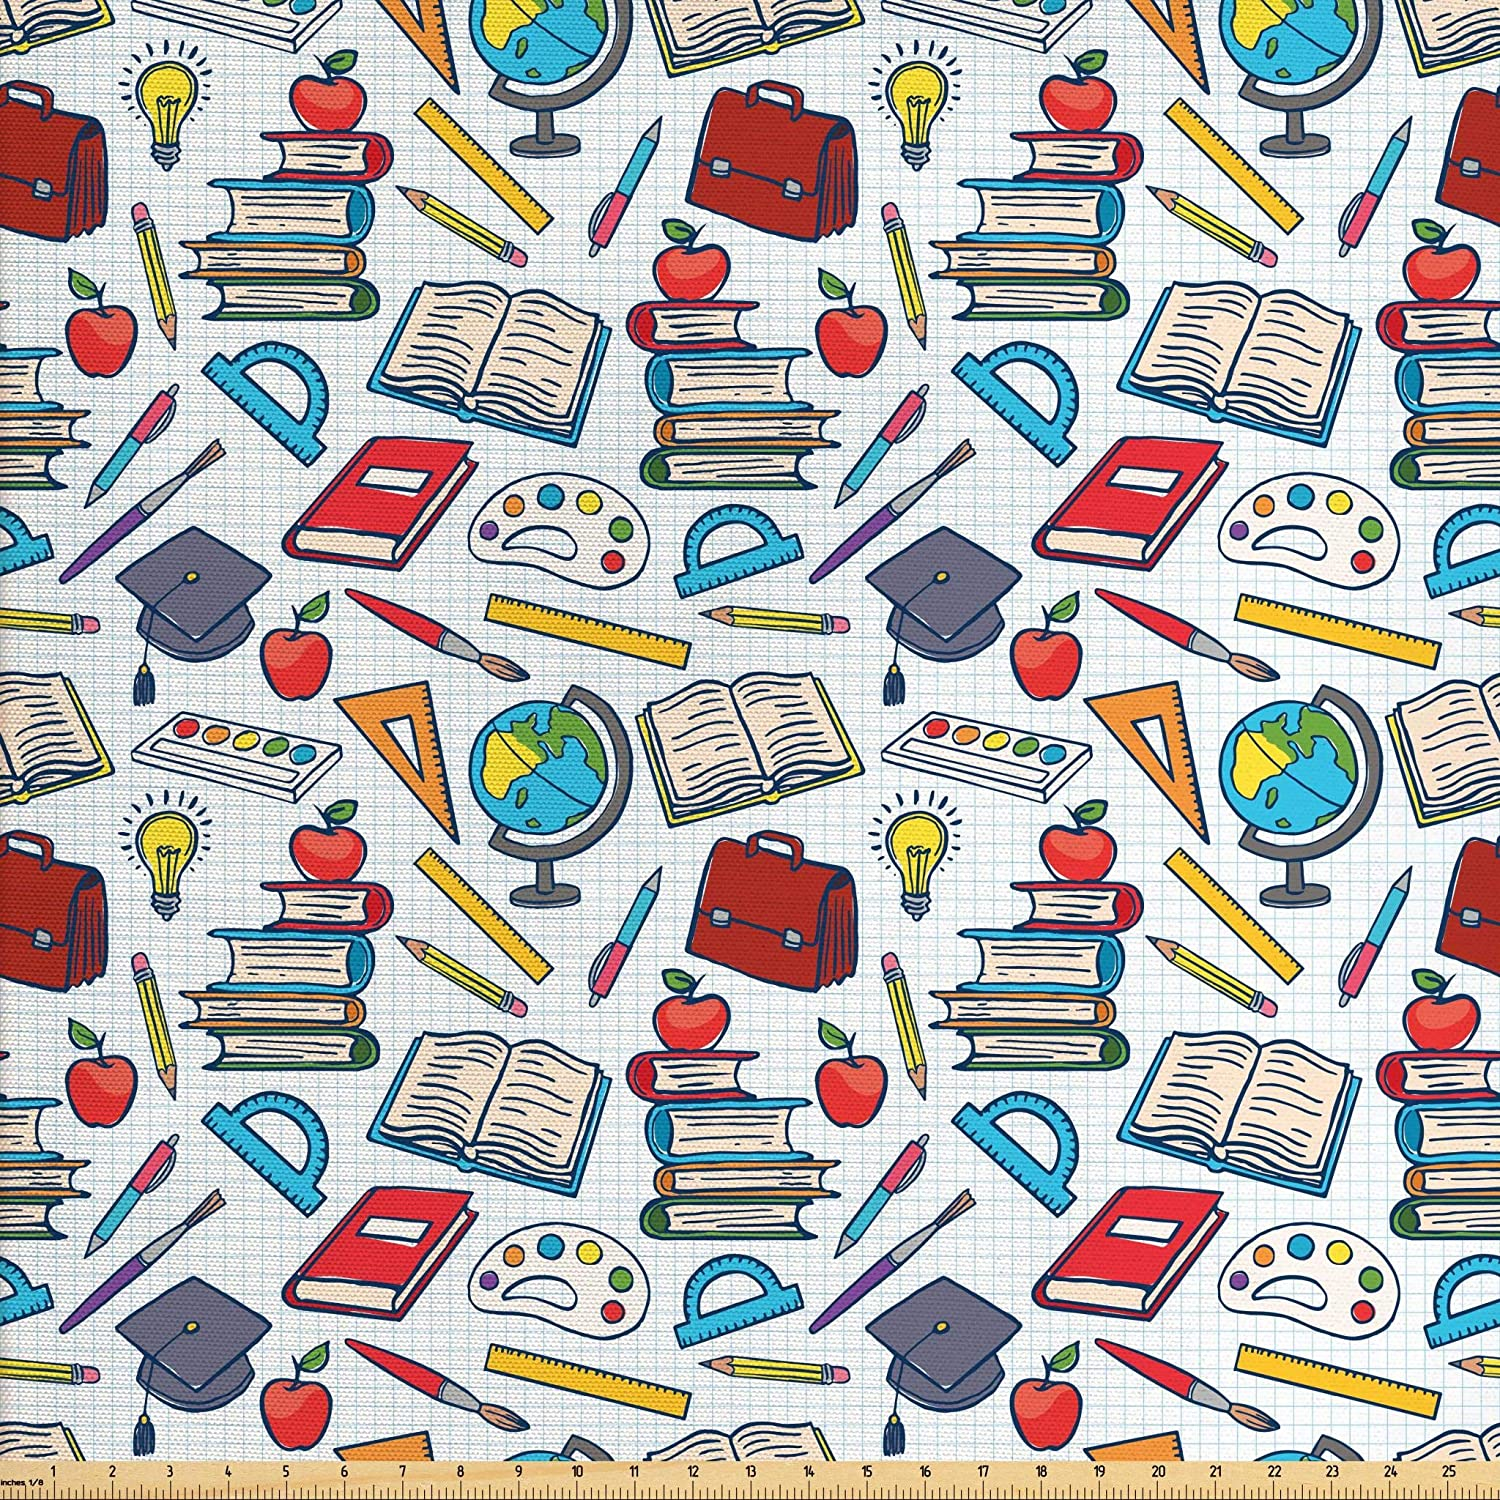 Ambesonne School Fabric by The Yard, Elementary School Theme Student Supplies Globe Paints and Brushes Books Education, Decorative Fabric for Upholstery and Home Accents, 2 Yards, Blue Red